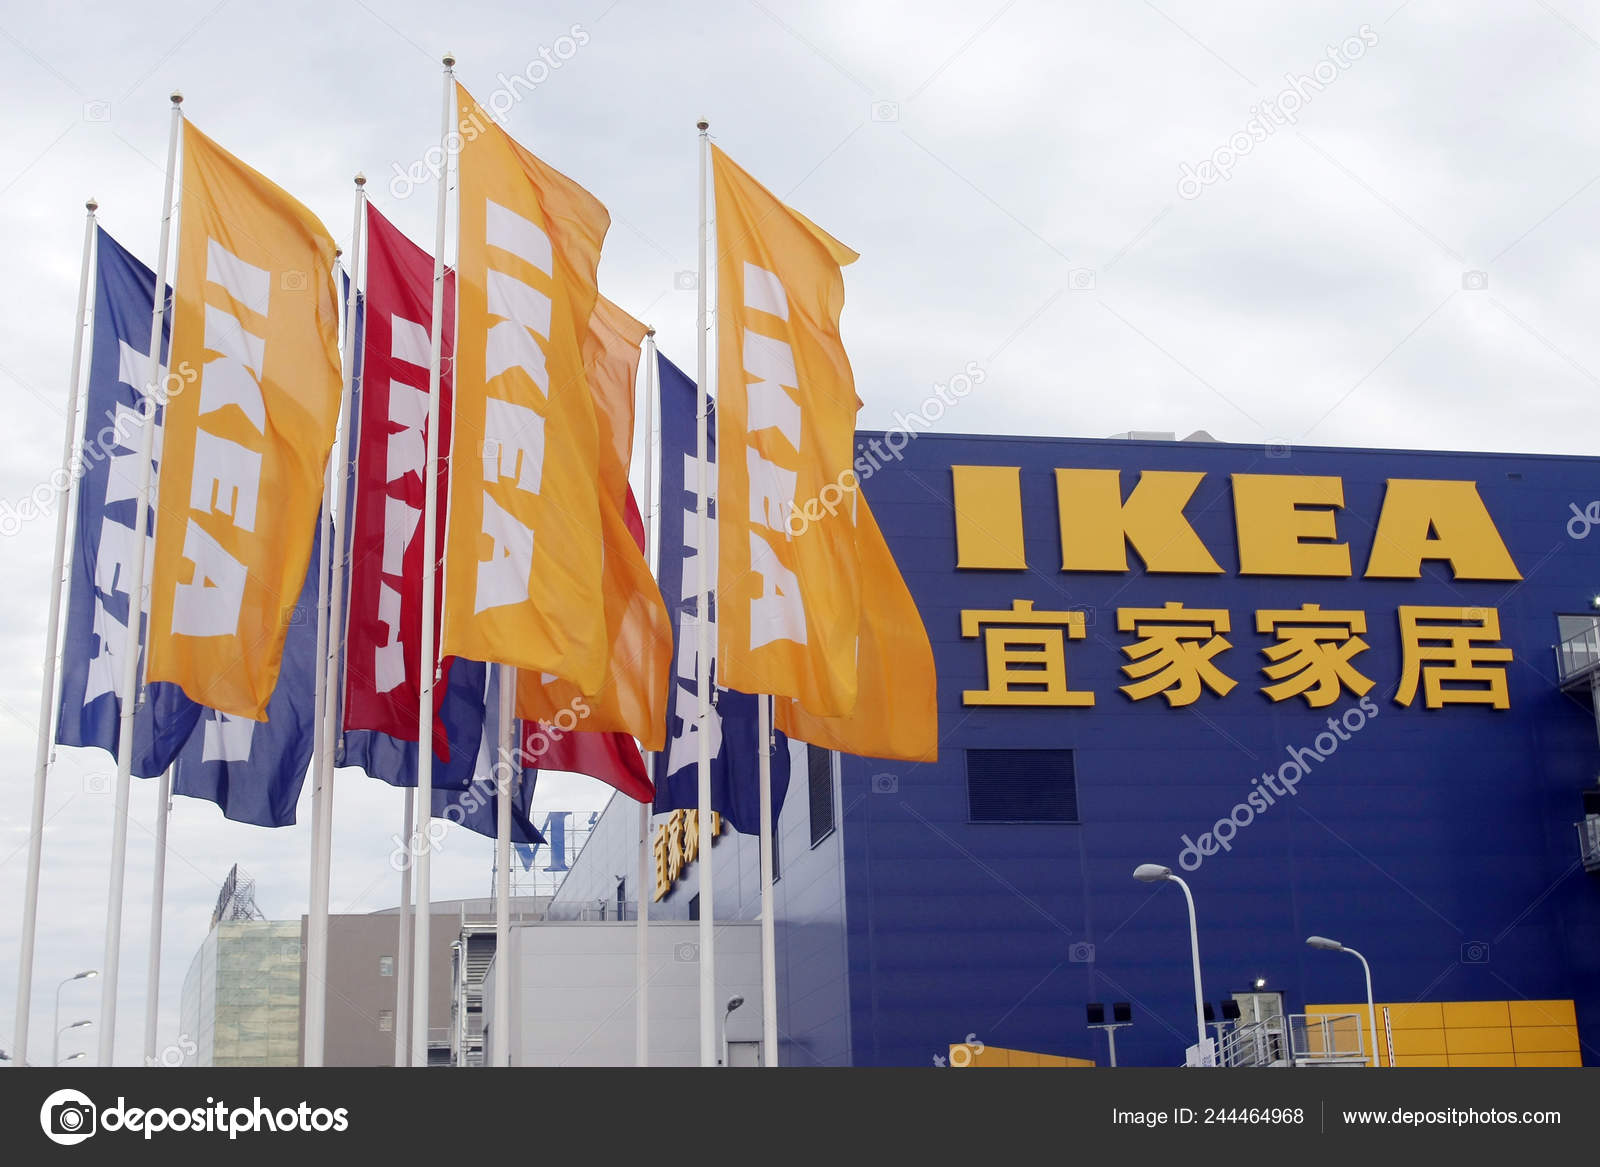 Ikea Front Flags Flutter Front Ikea Store Beicai Town Pudong Shanghai China – Stock Editorial Photo © Chinaimages #244464968